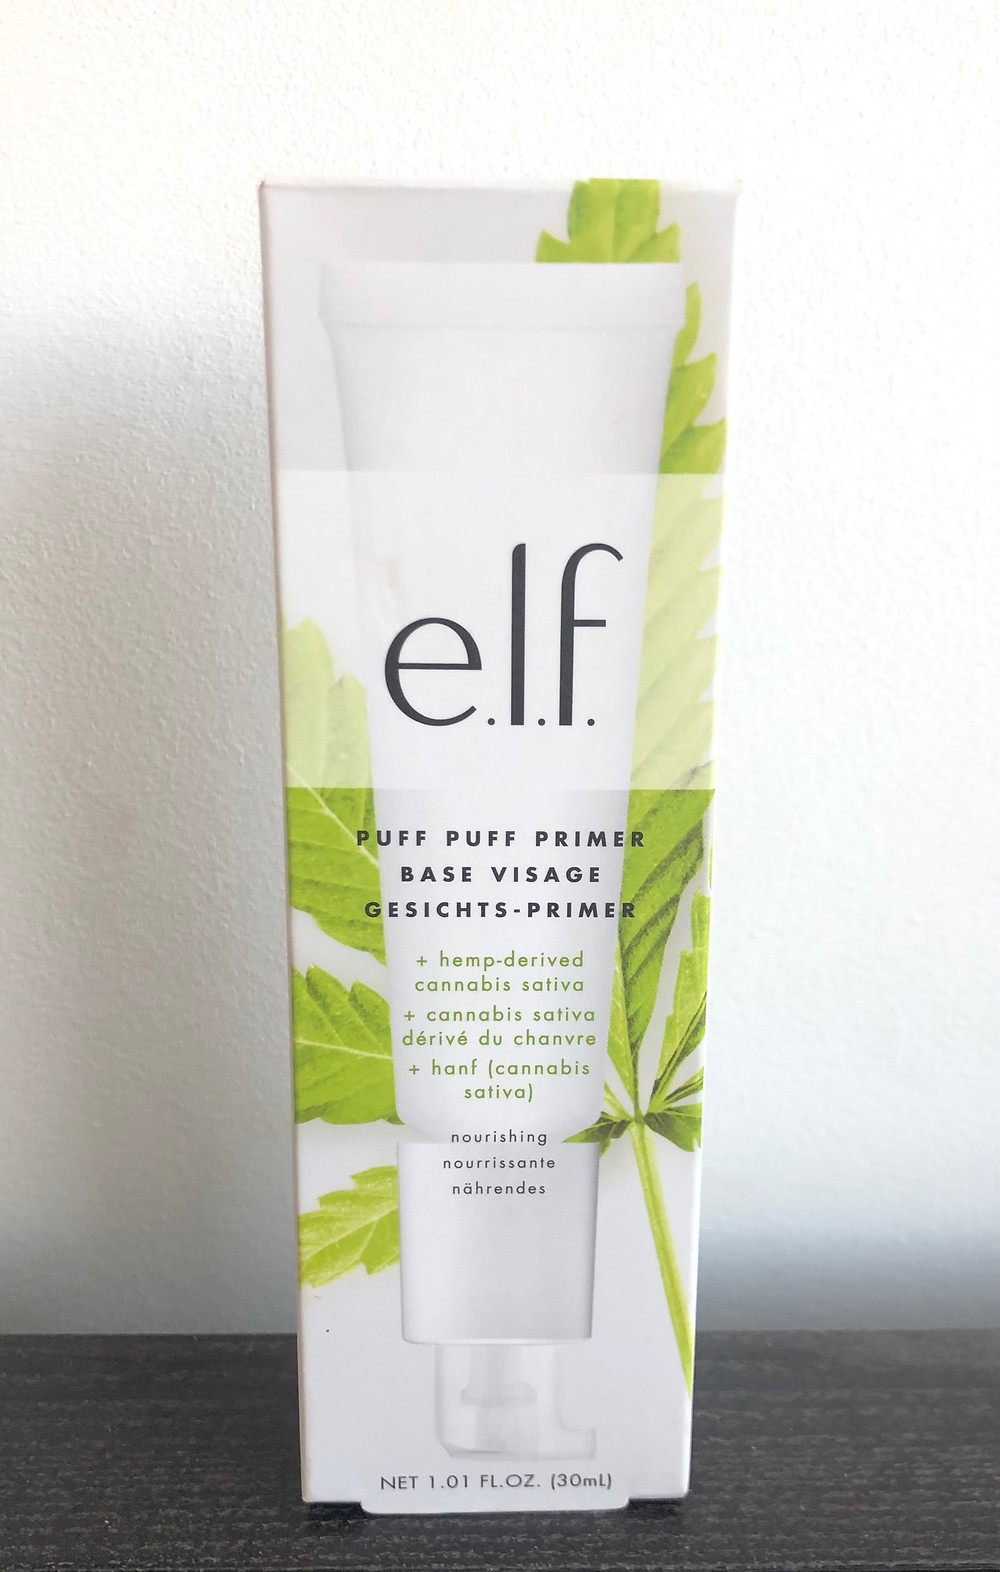 E.l.f Cosmetics Puff Puff Primer Review